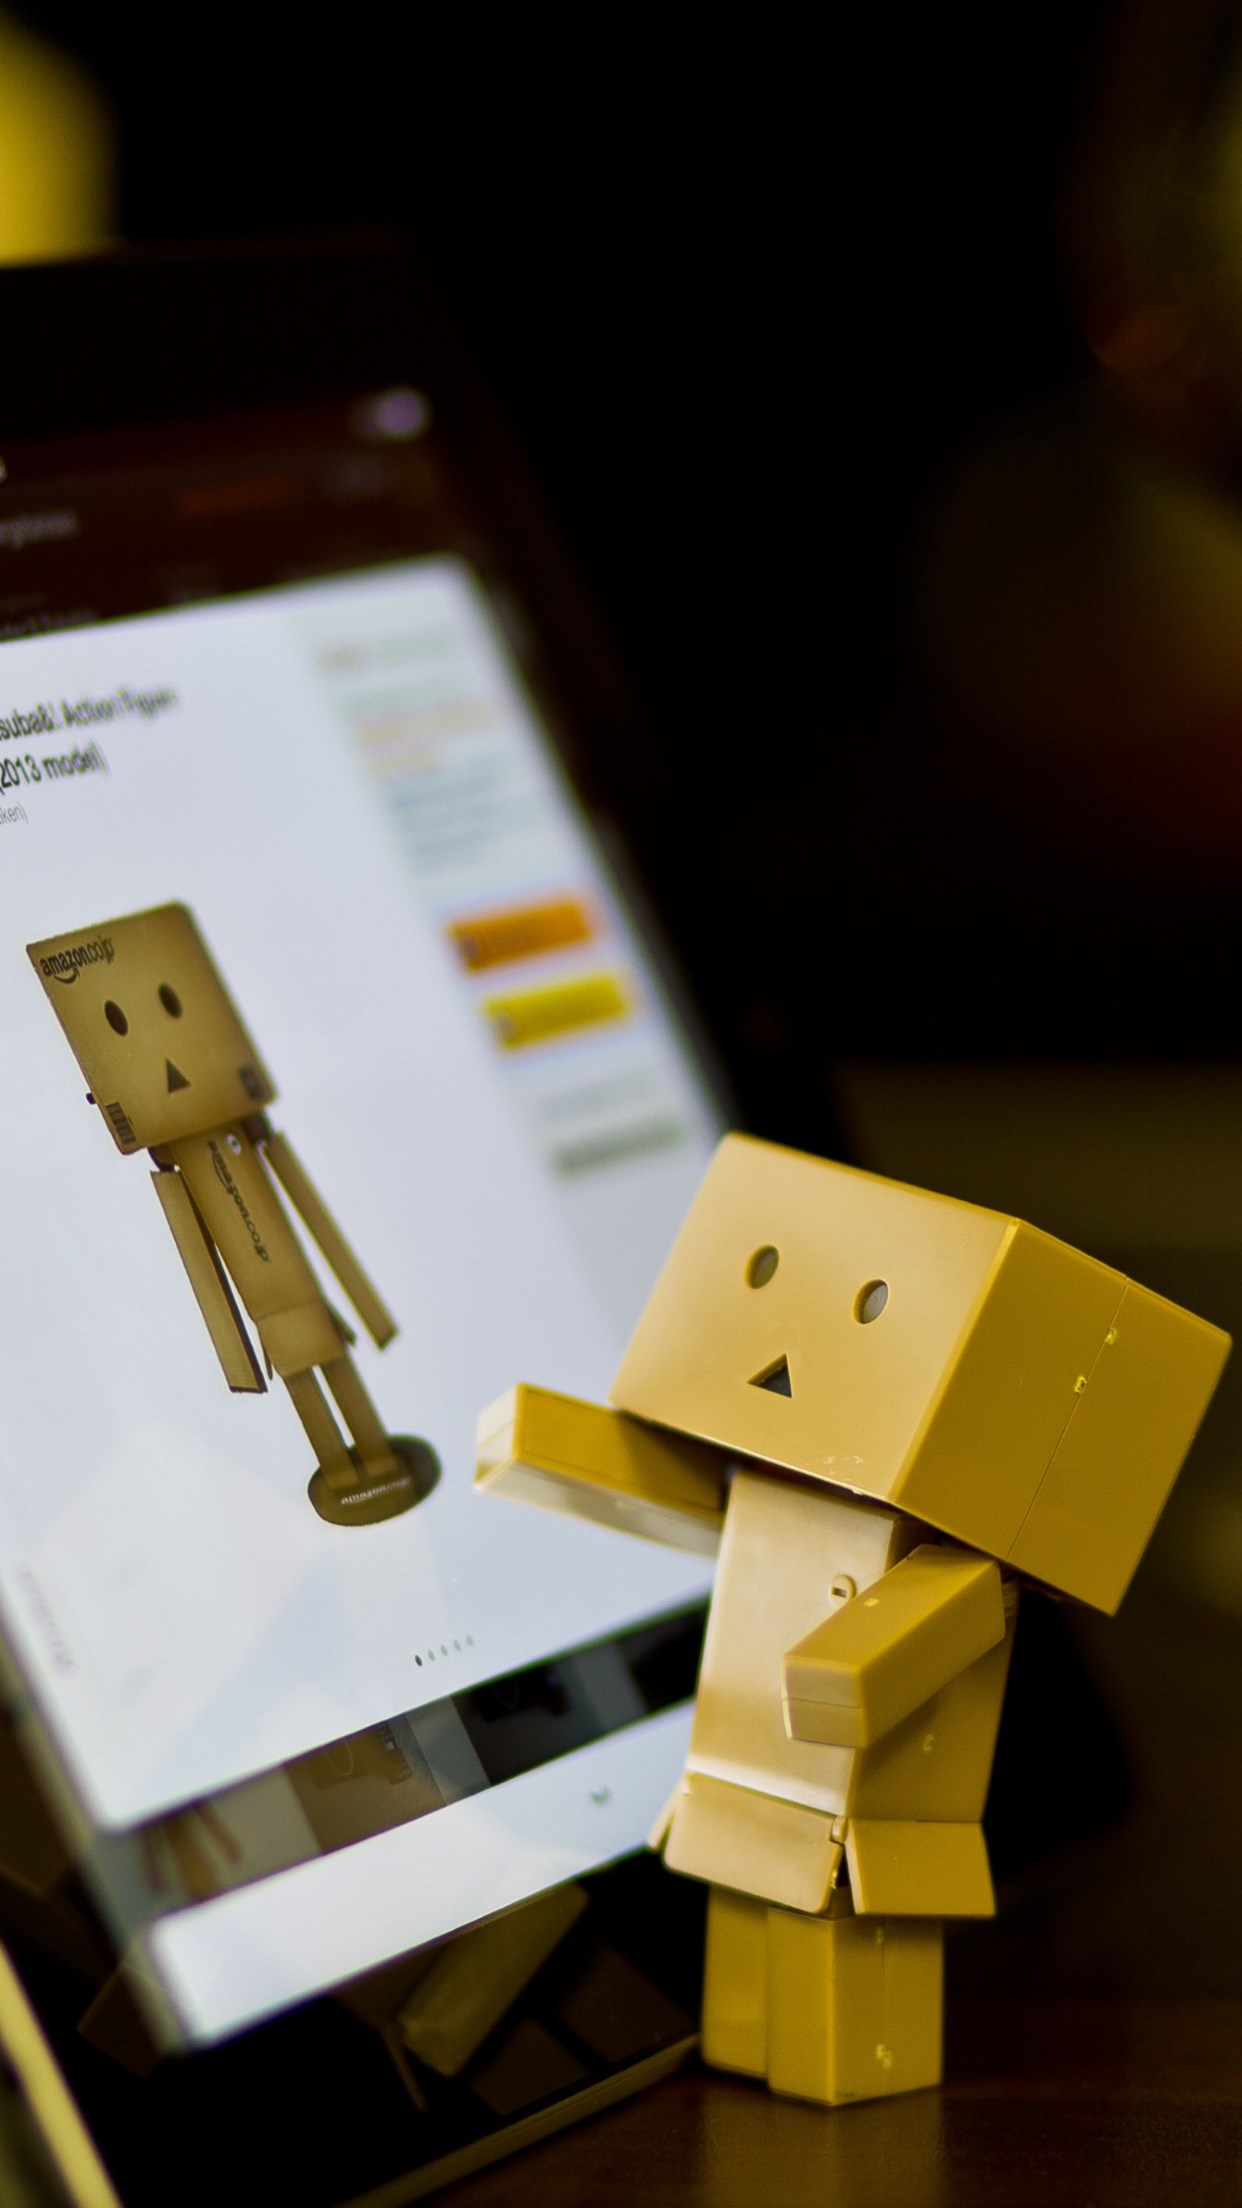 Danbo with tablet wallpaper 1242x2208